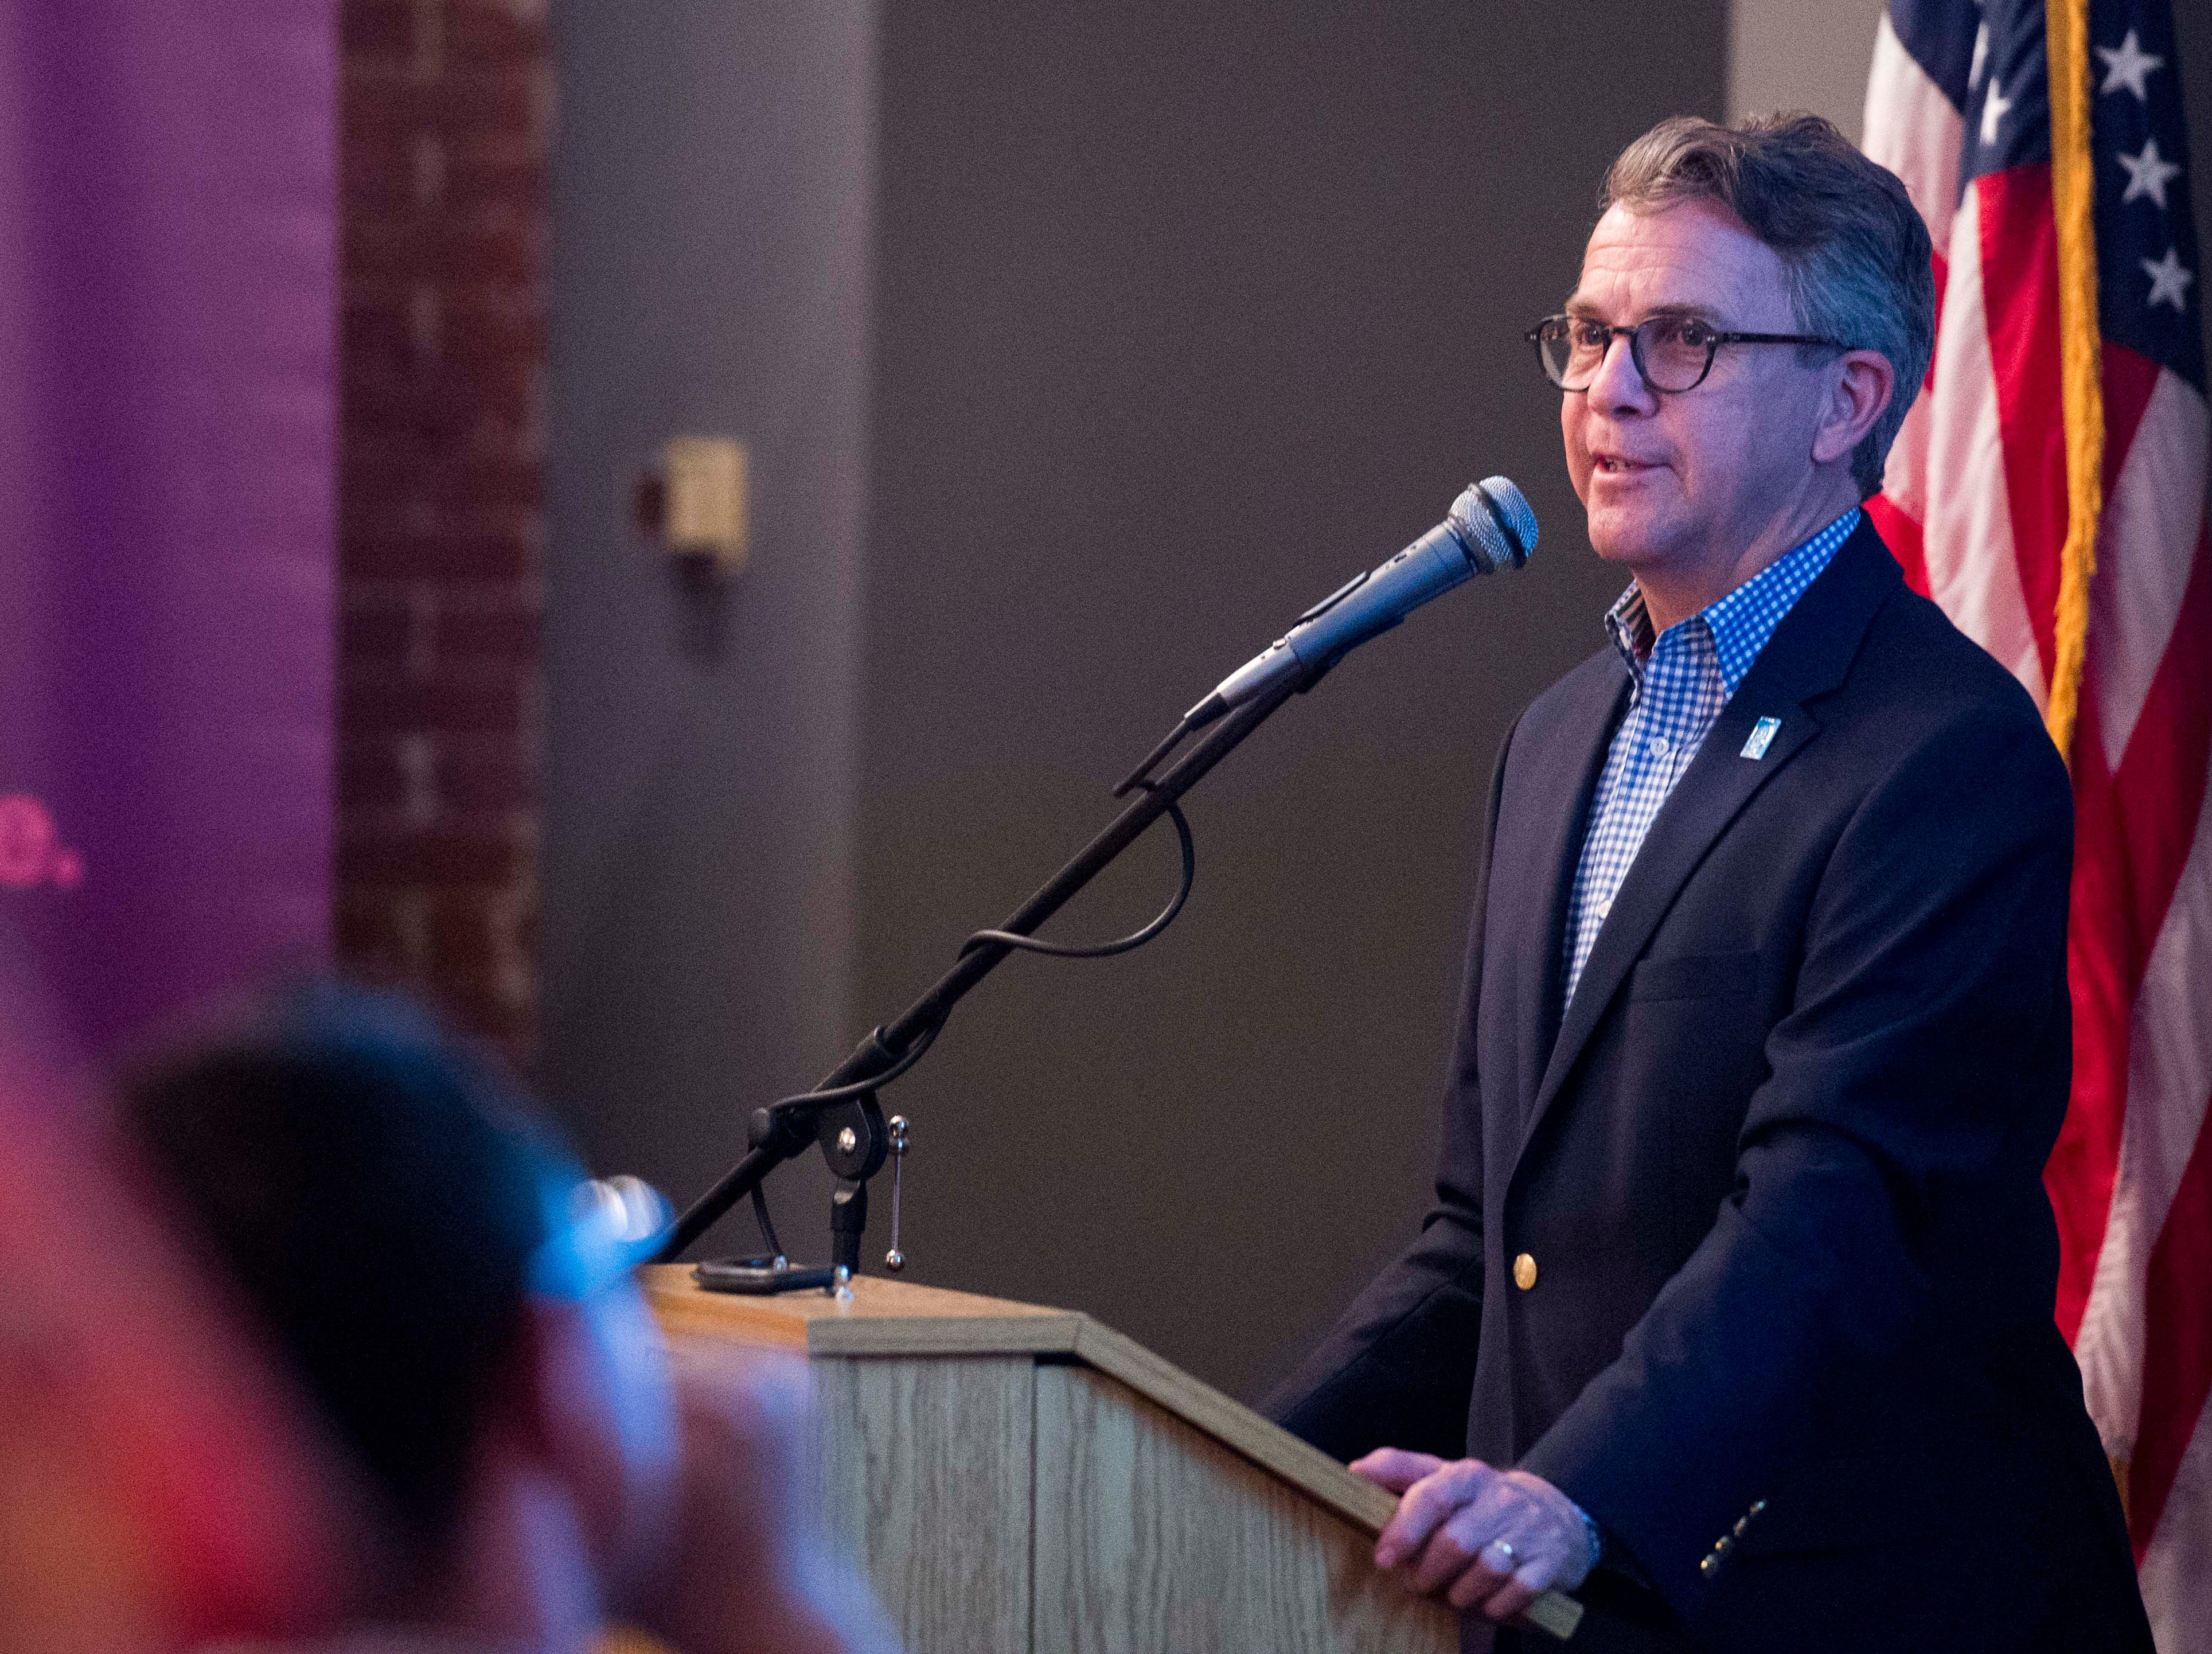 Evansville Mayor Lloyd Winnecke (R), addresses the crowd  to thank his supporters after winning the primary election Tuesday, May 7, 2019.